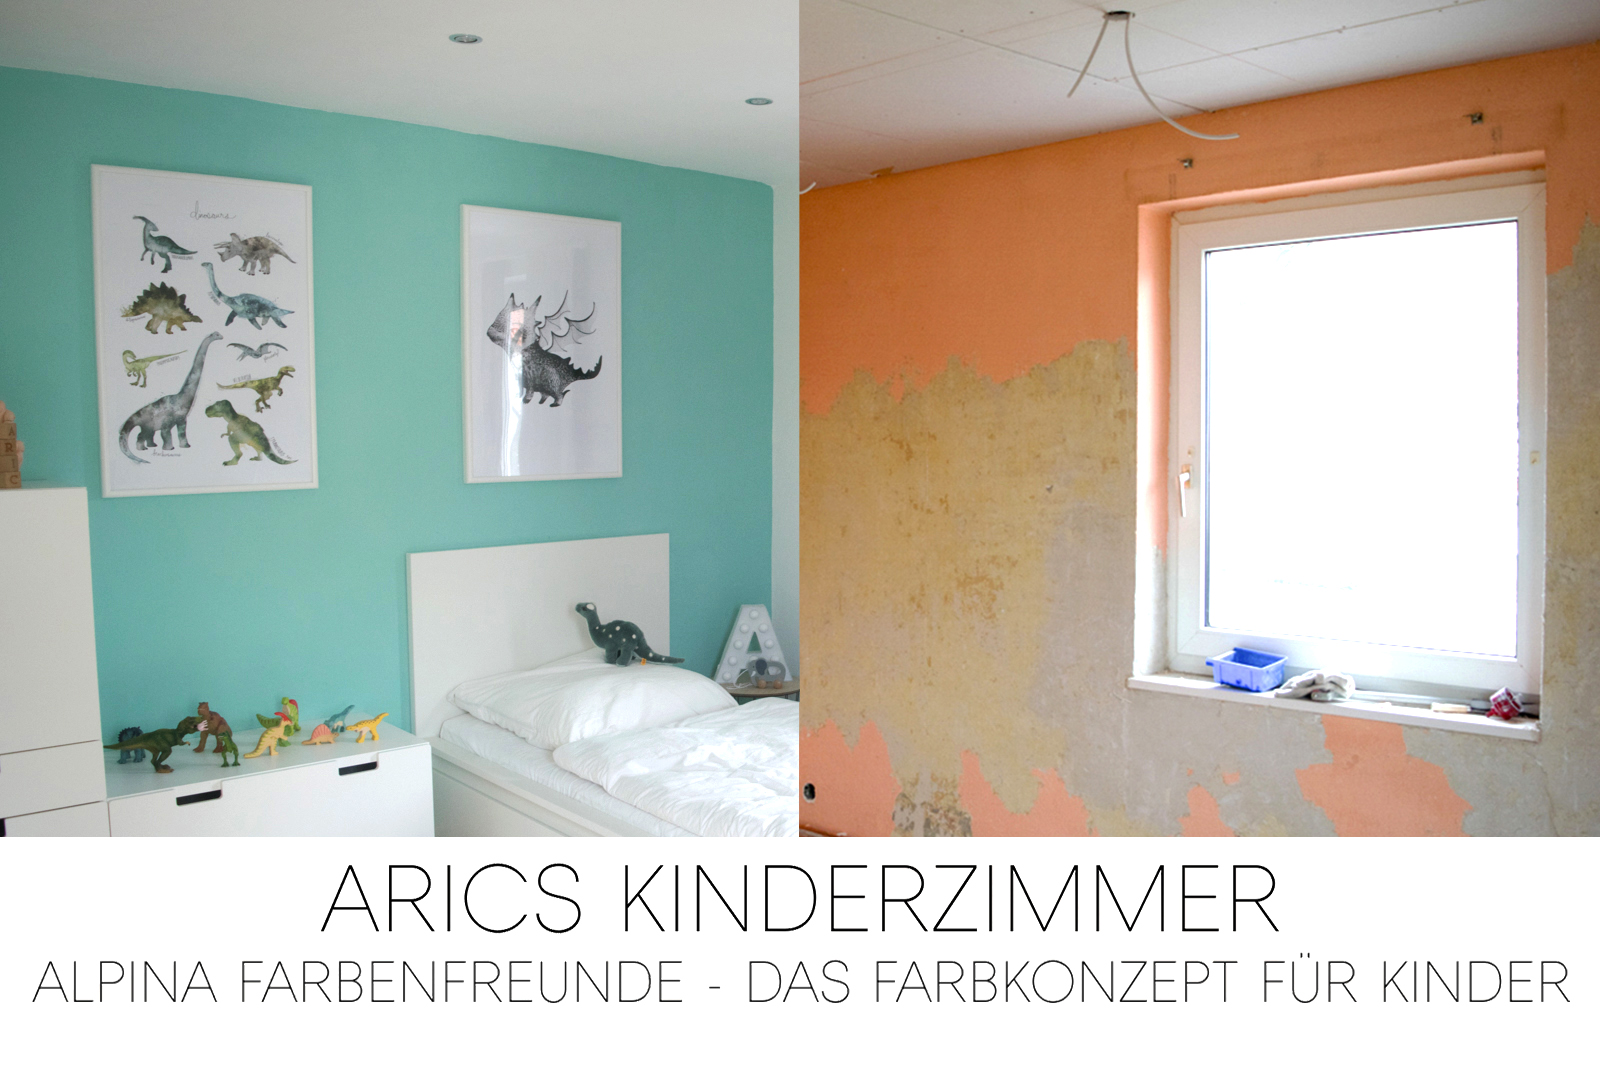 kinderzimmer gestalten ein neues kinderzimmer gestalten. Black Bedroom Furniture Sets. Home Design Ideas